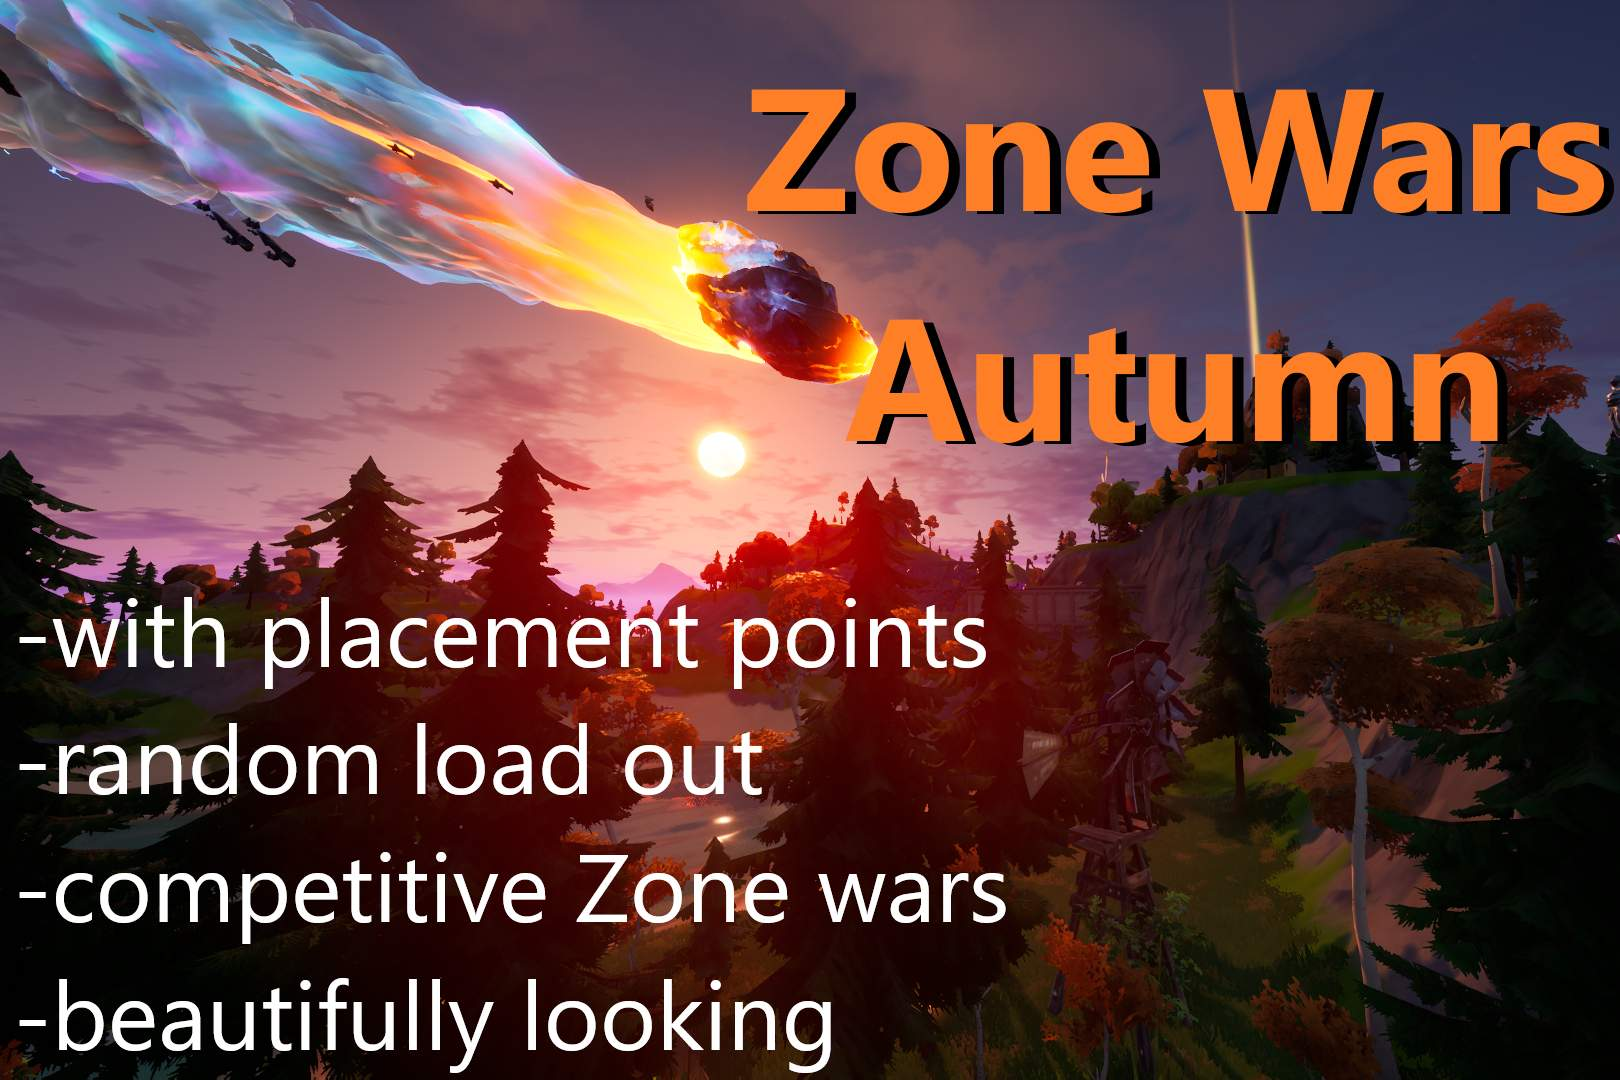 ZONE WARS AUTUMN